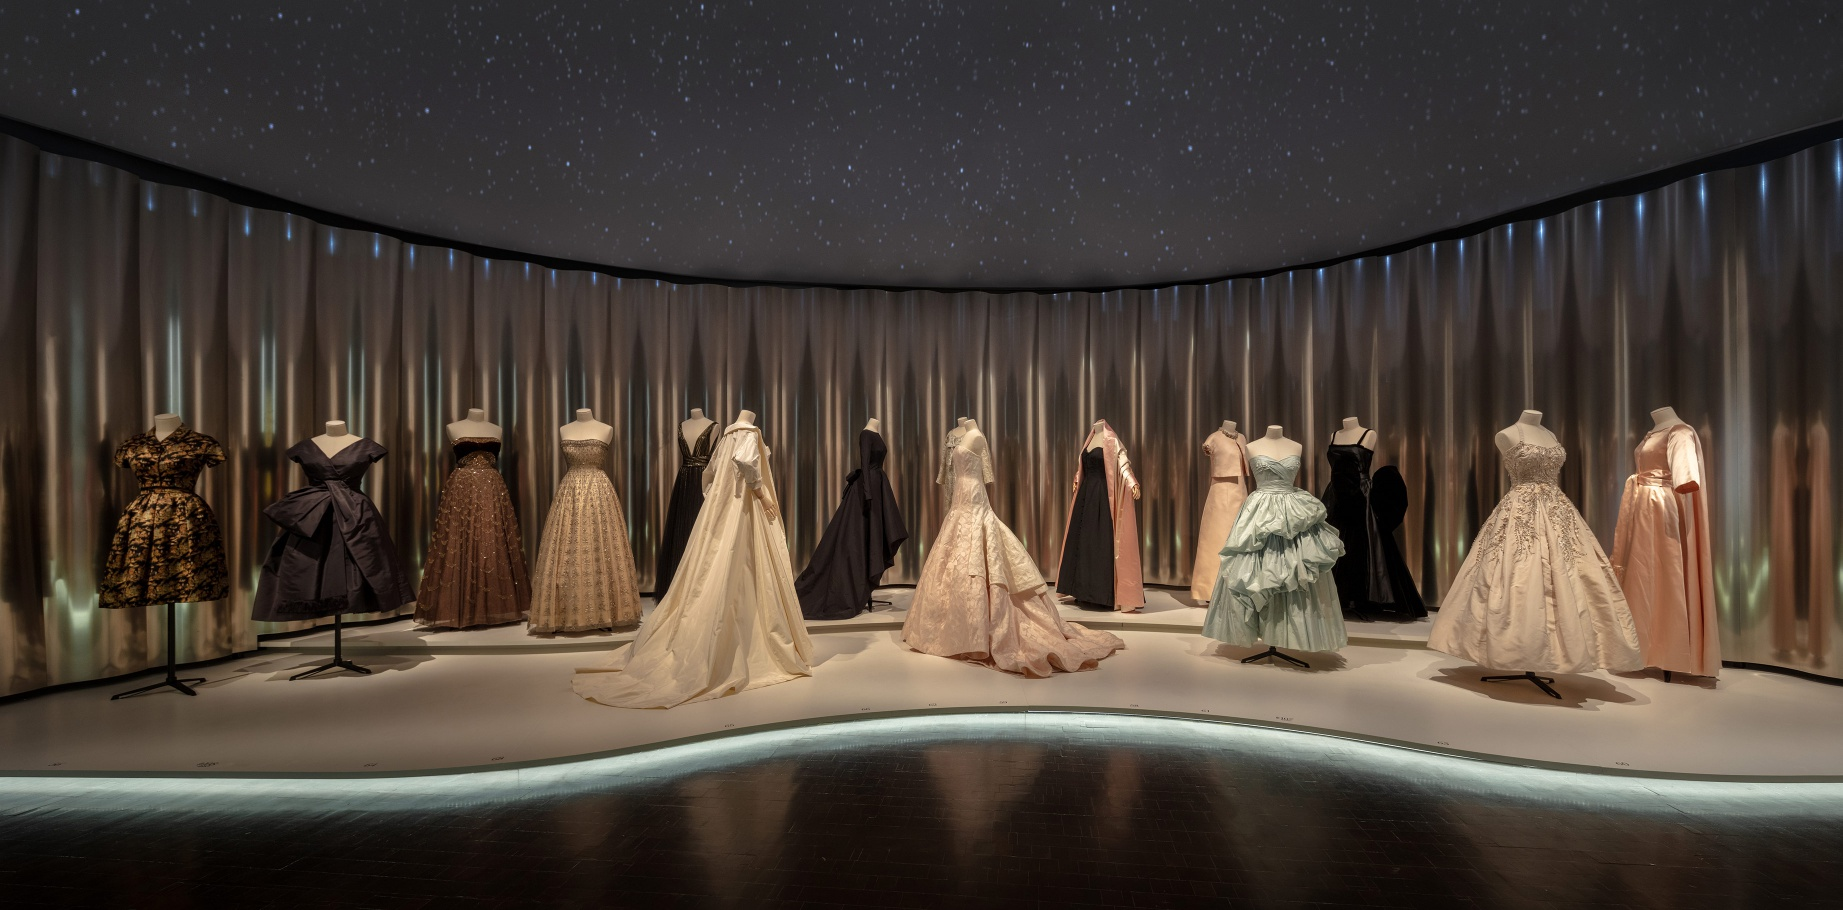 El Museo de Arte de Denver acoge la exposición de Dior - Photo ©James Florio